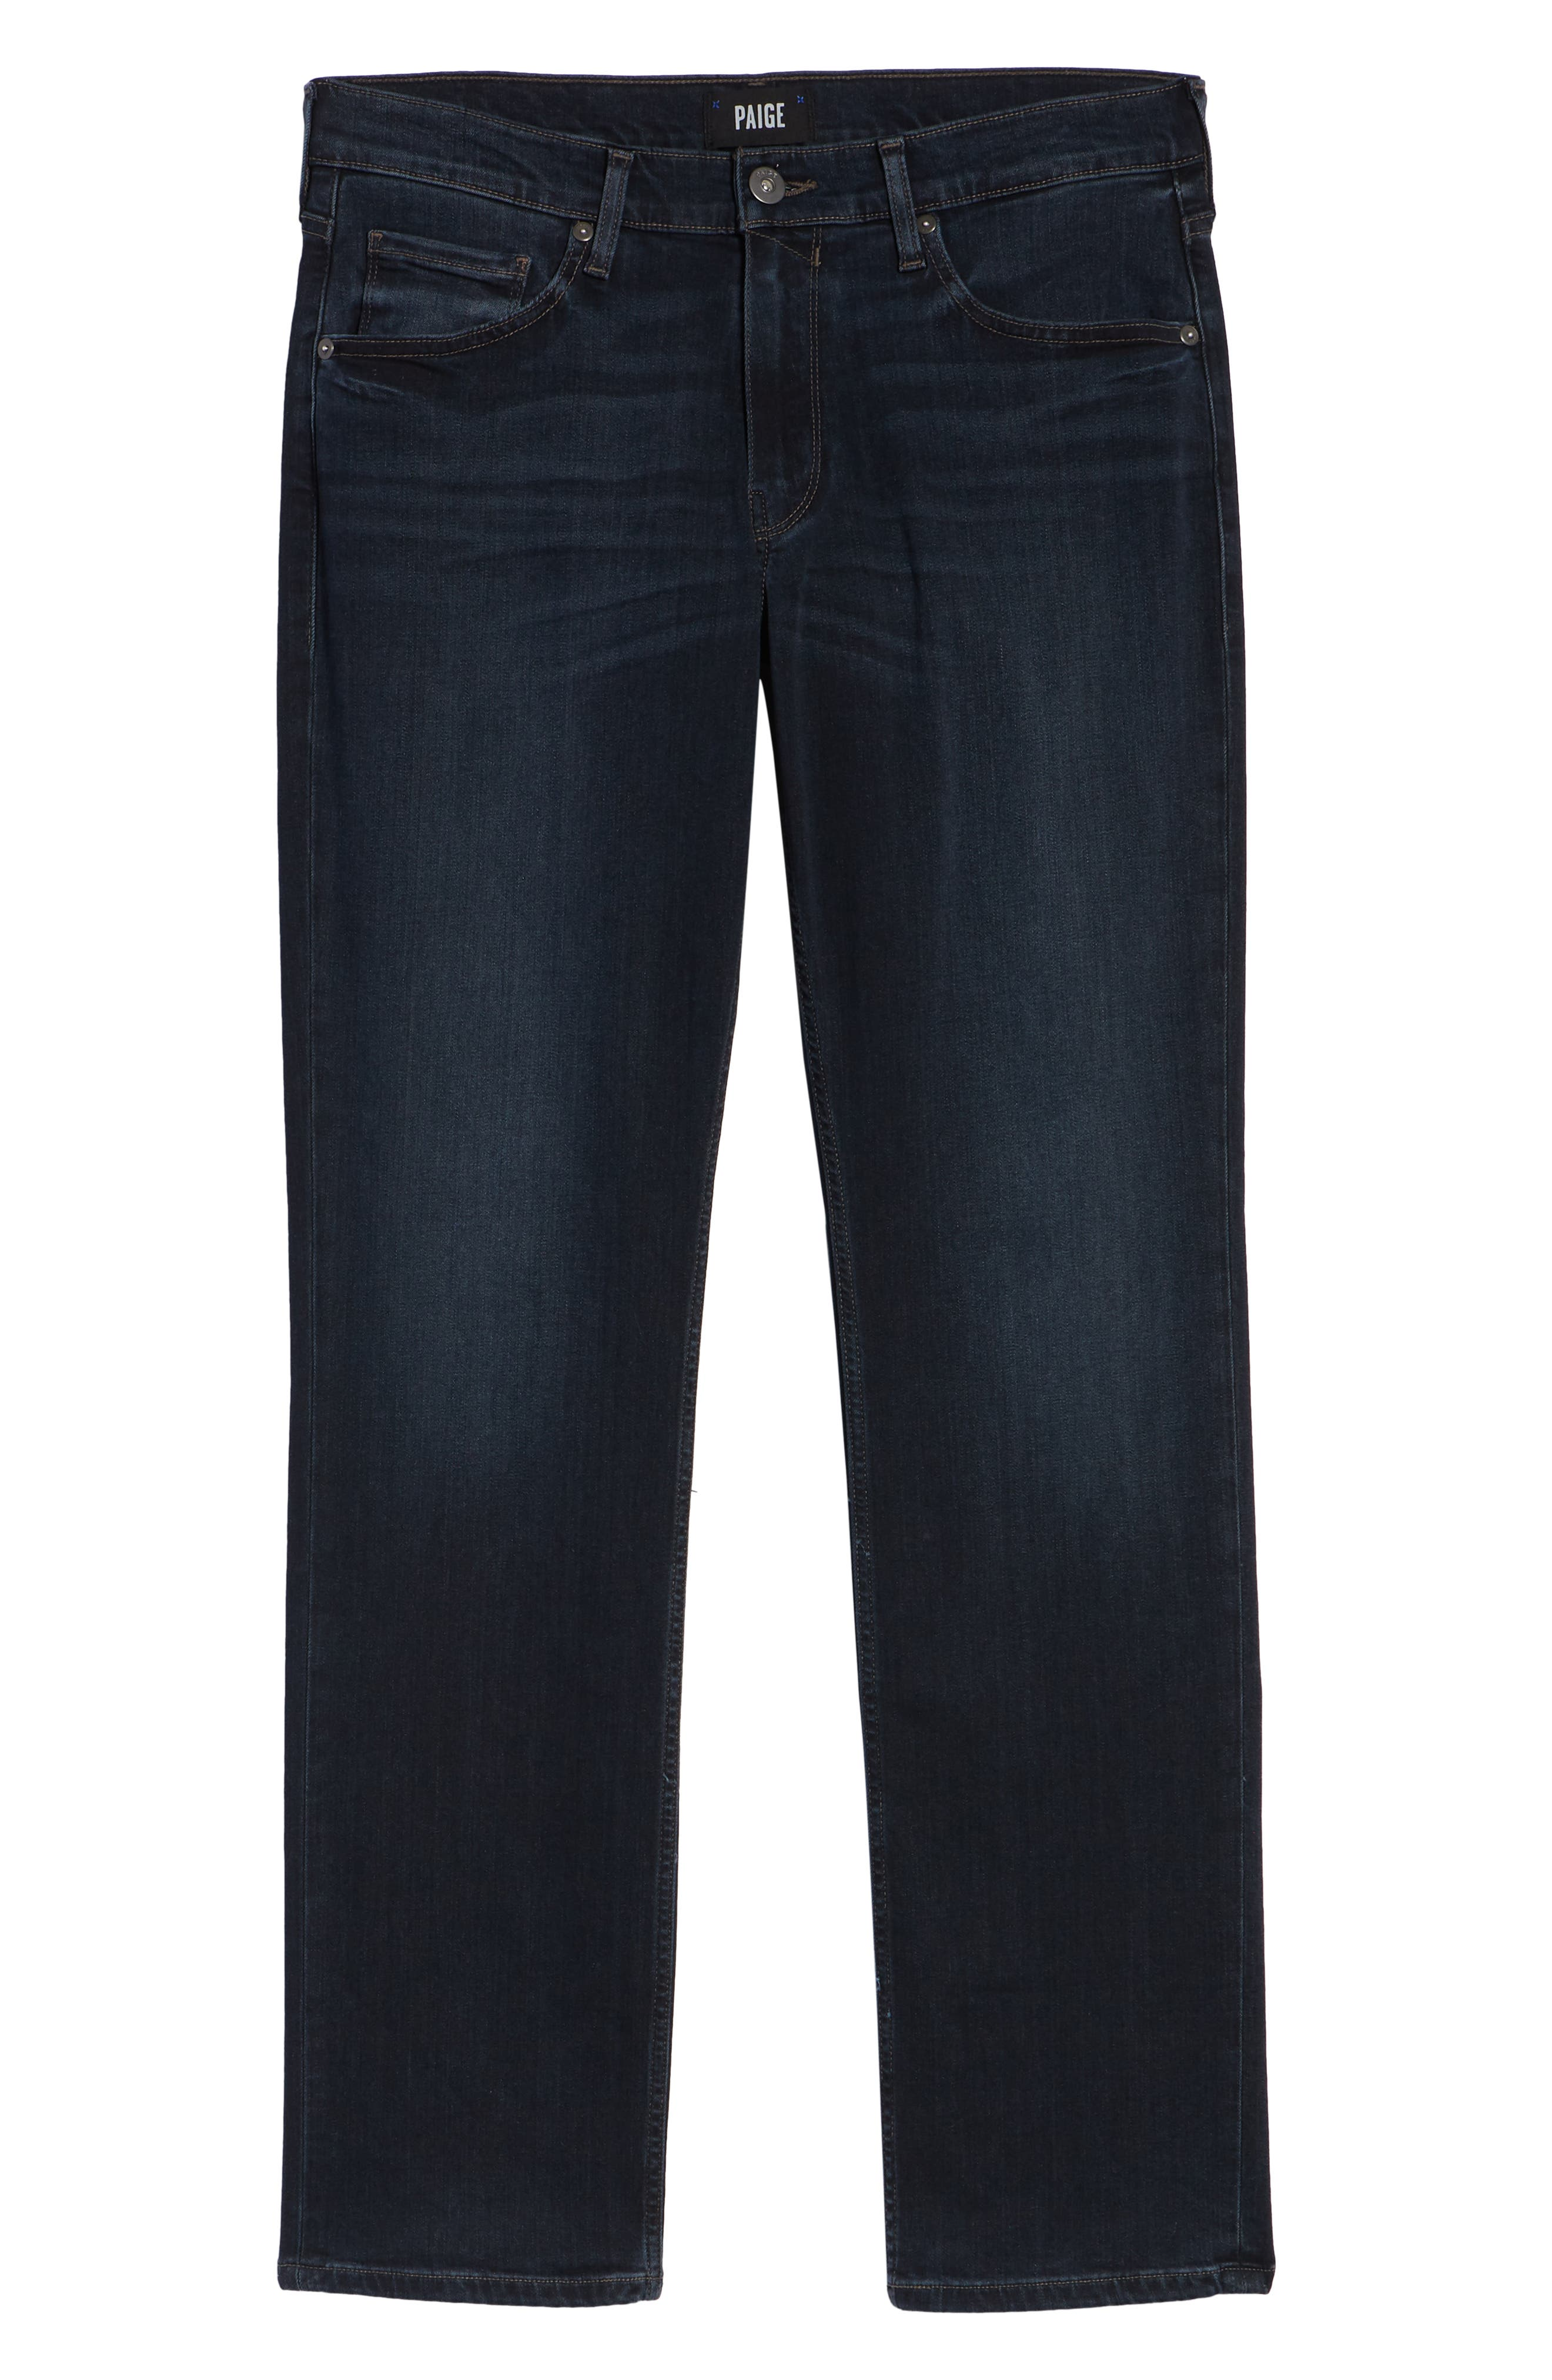 Transcend - Normandie Straight Leg Jeans,                             Alternate thumbnail 6, color,                             LARK